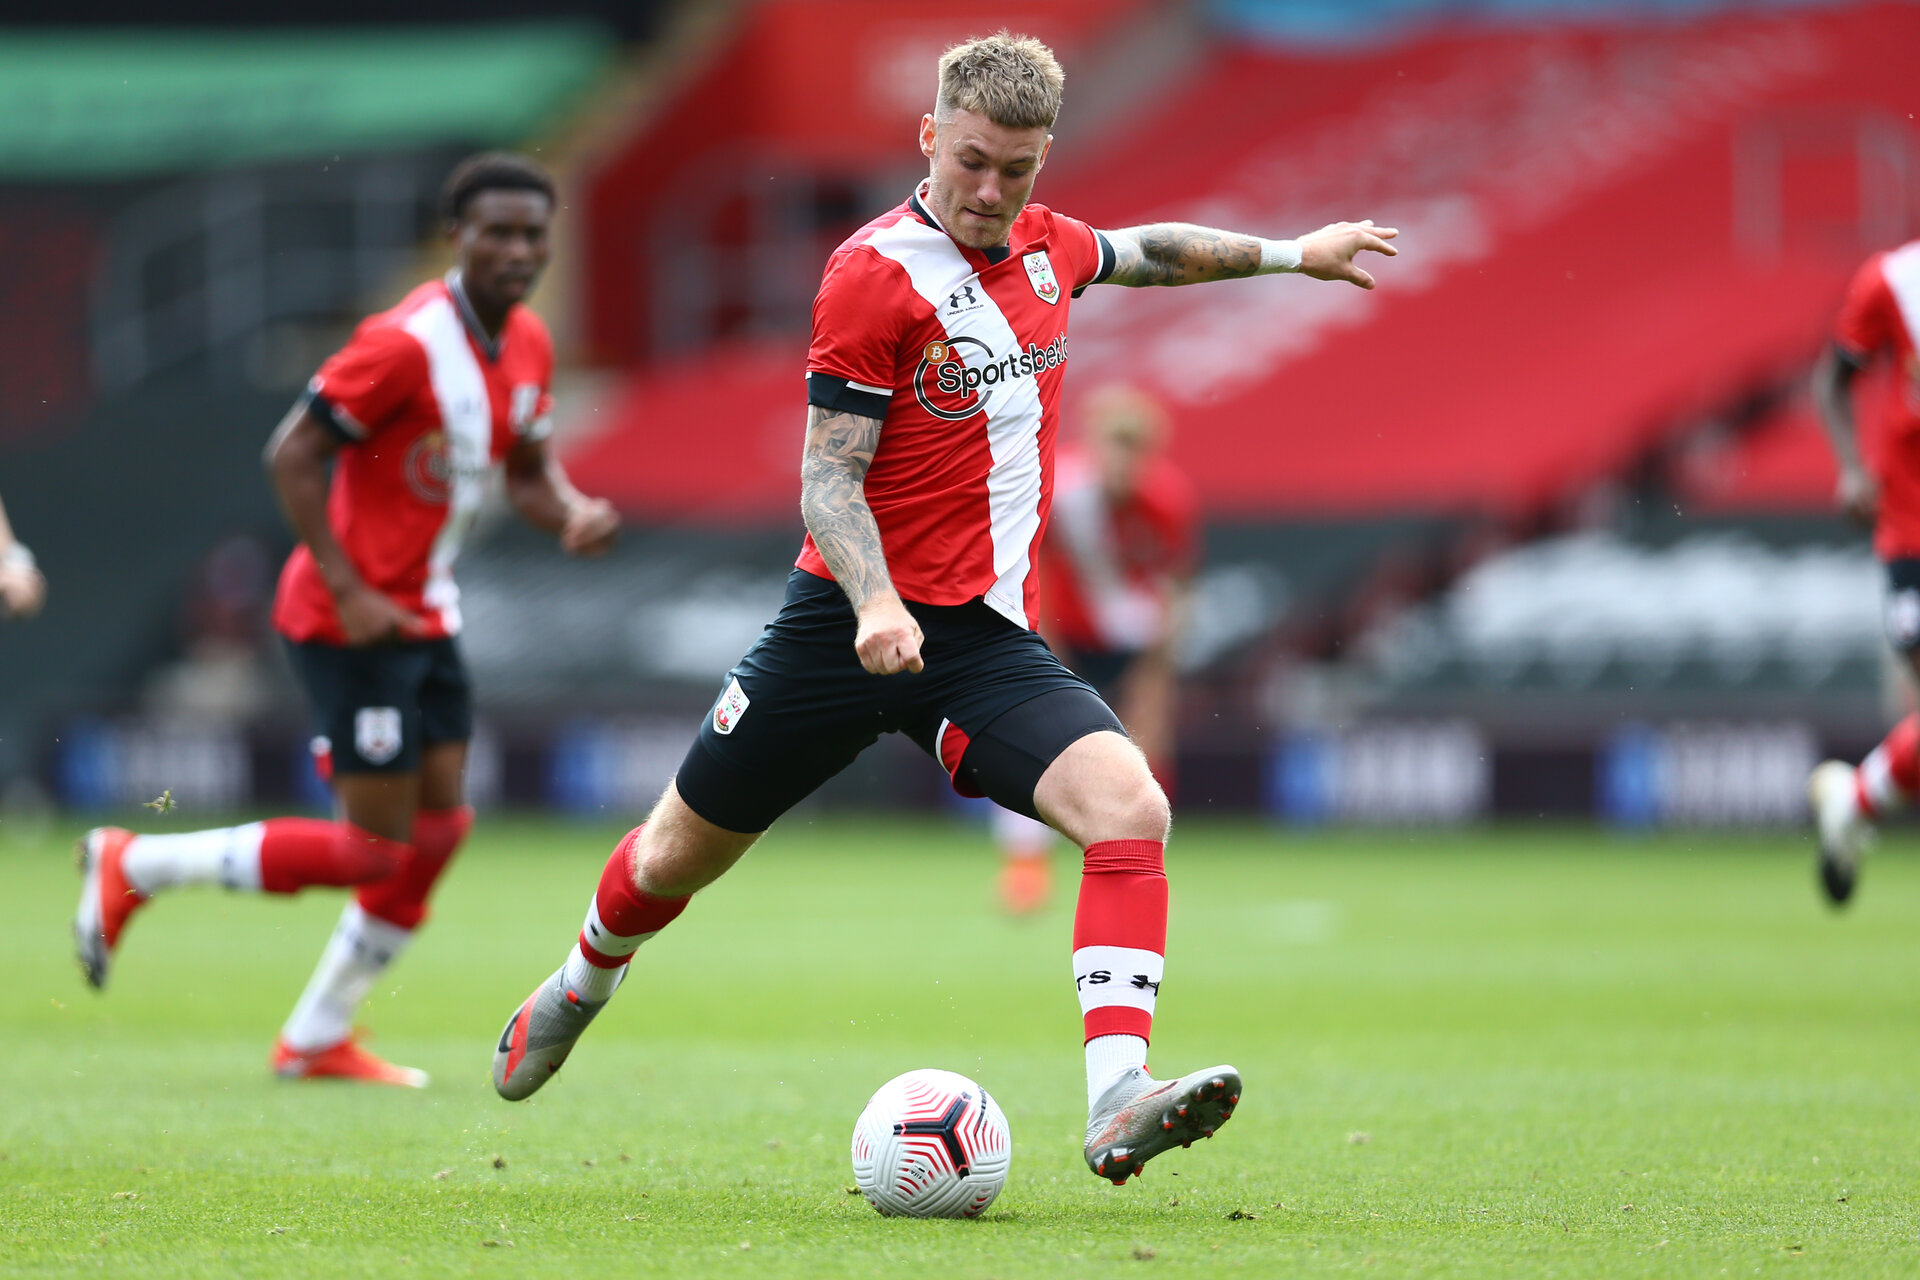 SOUTHAMPTON, ENGLAND - SEPTEMBER 1: during a pre-season friendly match between Southampton U23 and Coventry City at St Mary's Stadium on September 1, 2020 in Southampton, United Kingdom. (Photo by Isabelle Field/Southampton FC)